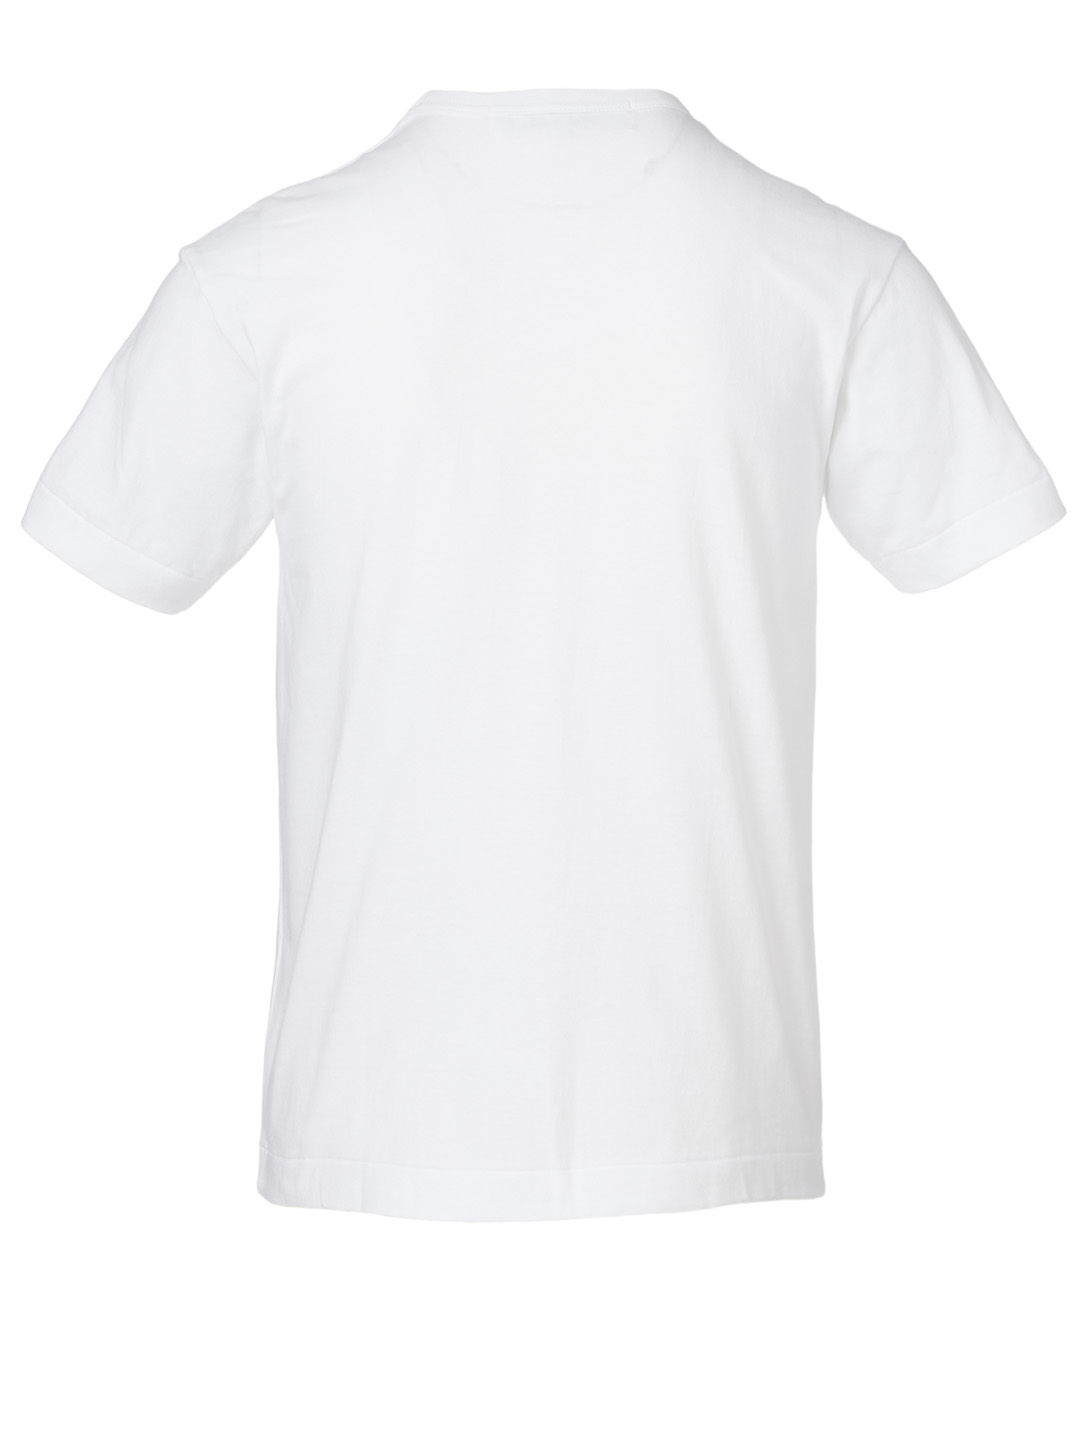 COMME DES GARÇONS PLAY Upside Down Logo T-Shirt Men's White